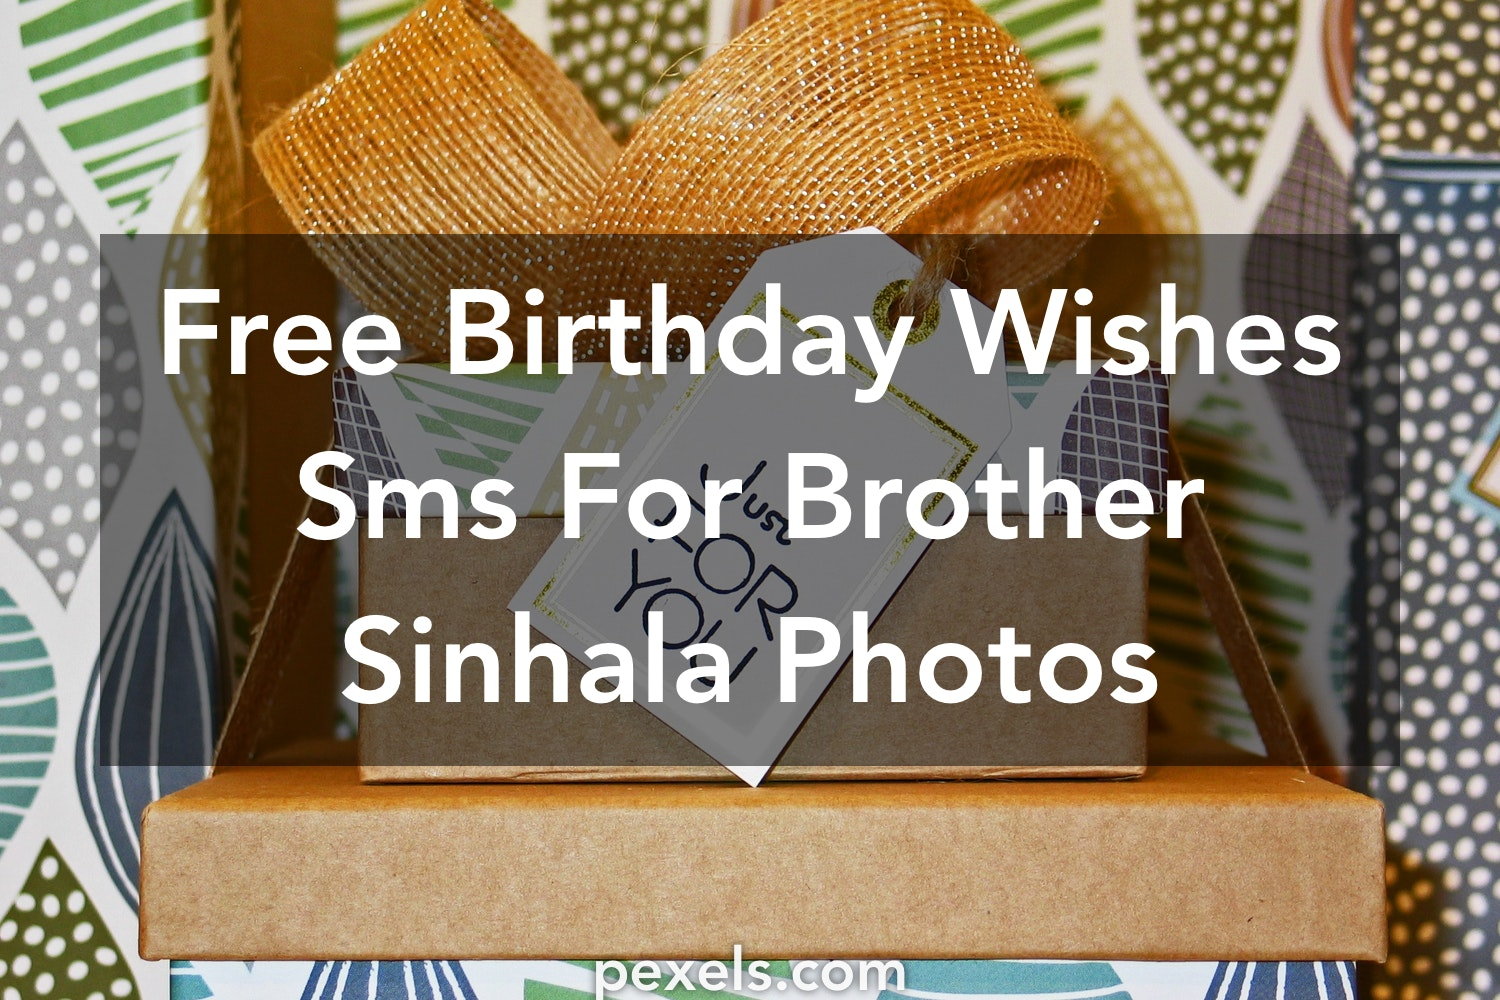 100 Amazing Birthday Wishes Sms For Brother Sinhala Photos Pexels Free Stock